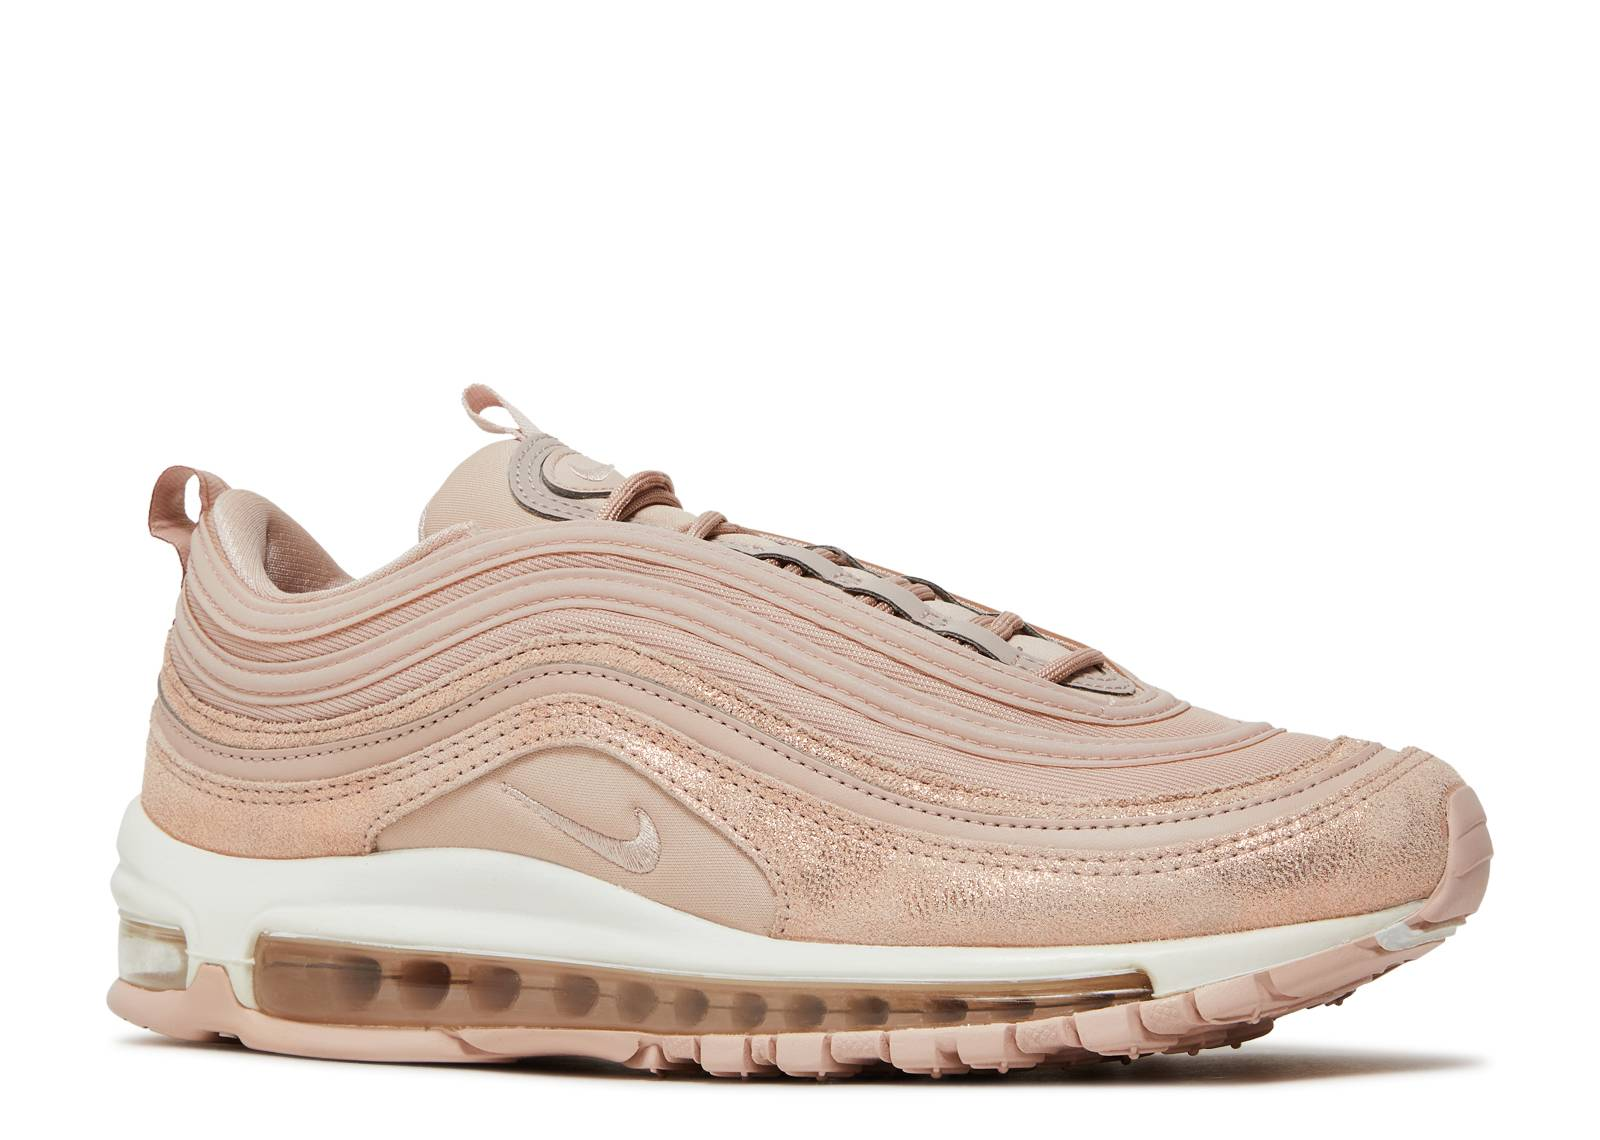 Nike Air Max 97 SE Womens Shoes Particle Beige Rose Gold AV8198 200 Size 7 9